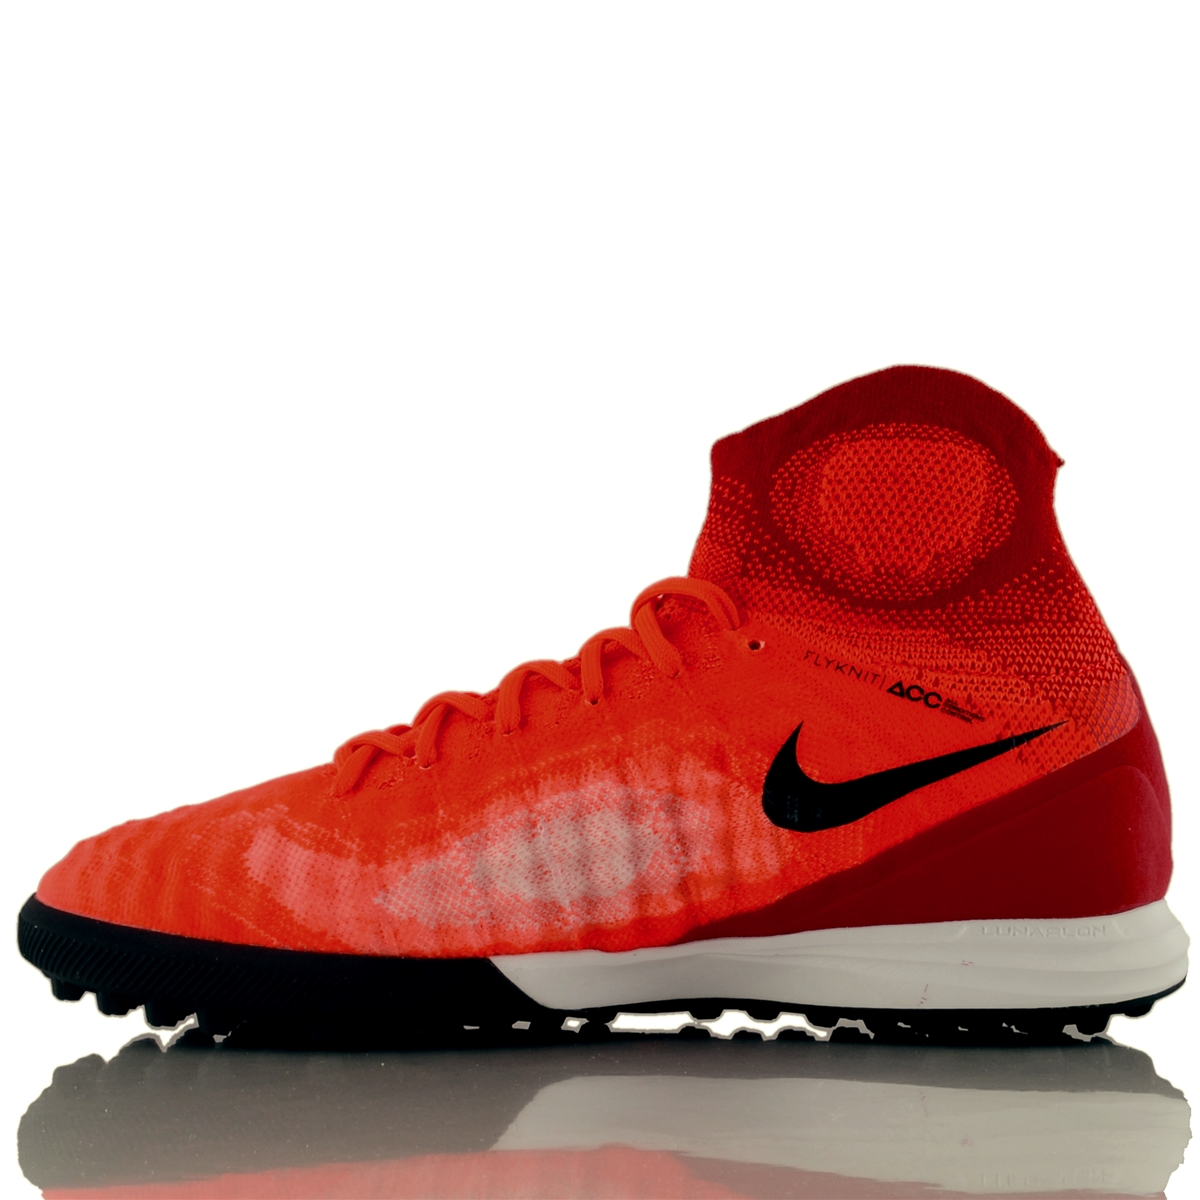 f2e1038a9 Nike MagistaX Proximo II DF TF Turf Soccer Shoes (Total Crimson ...